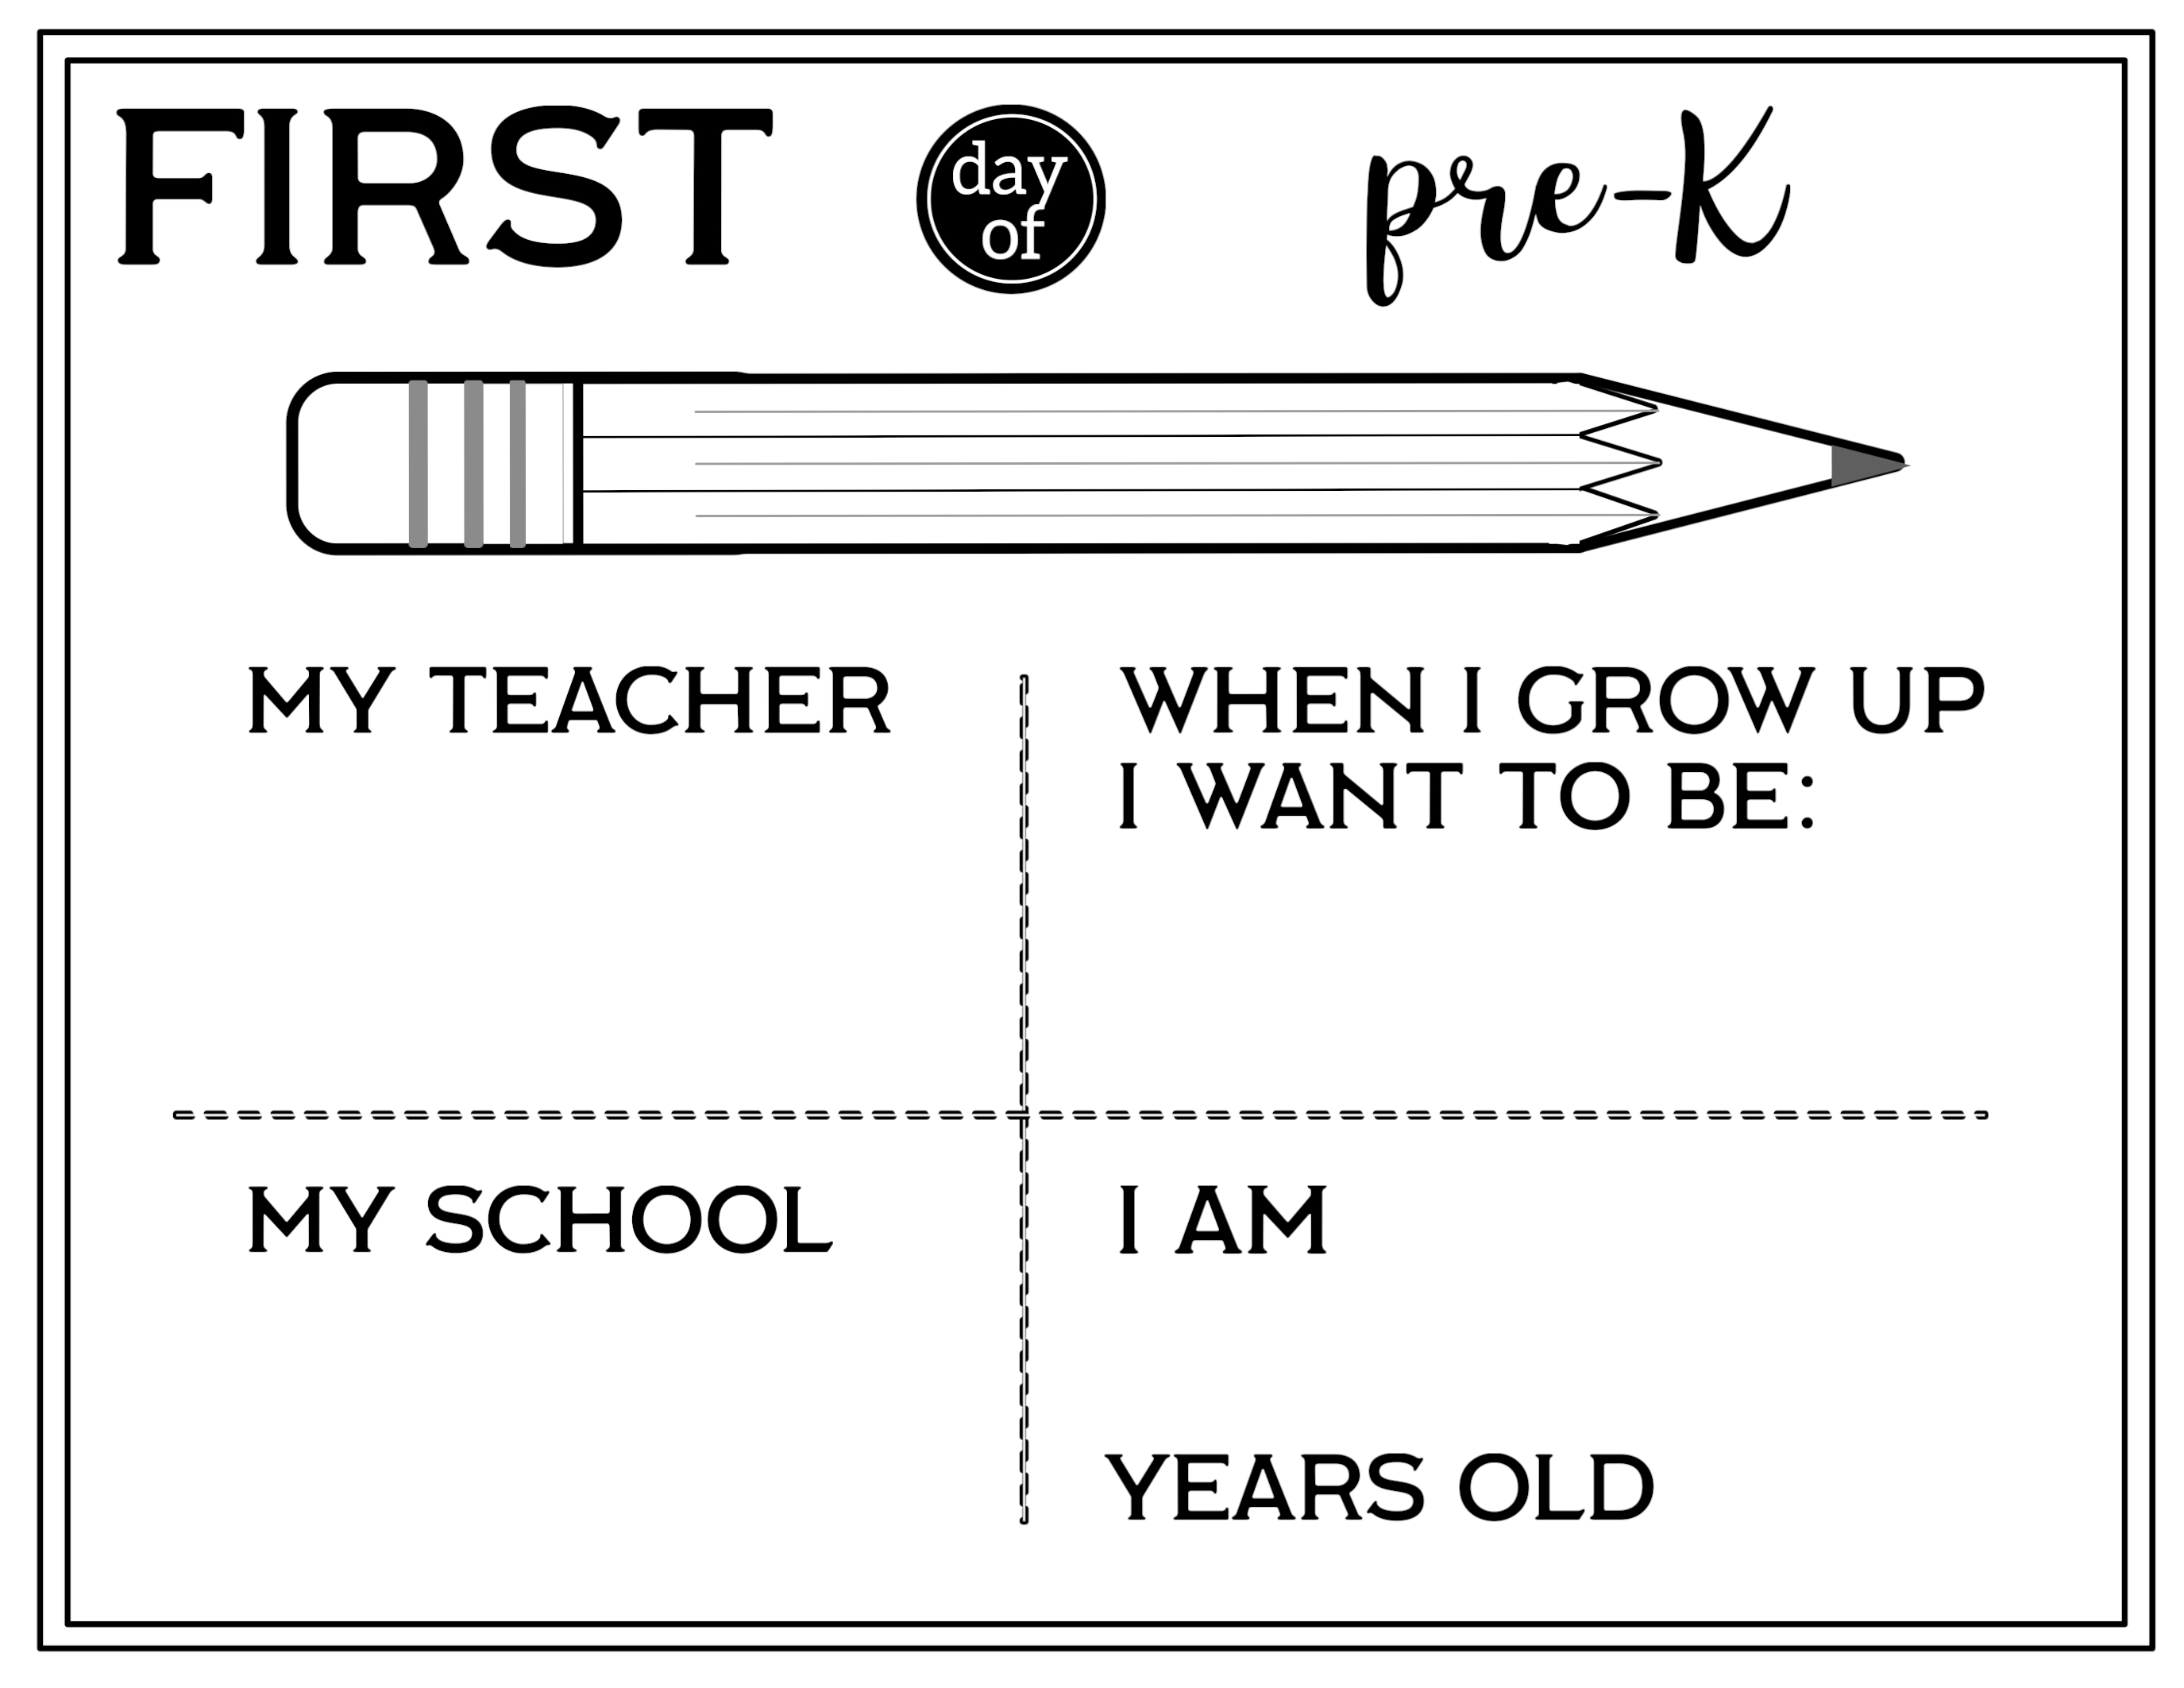 Free Printable First Day of School All About Me Sign - Paper ...